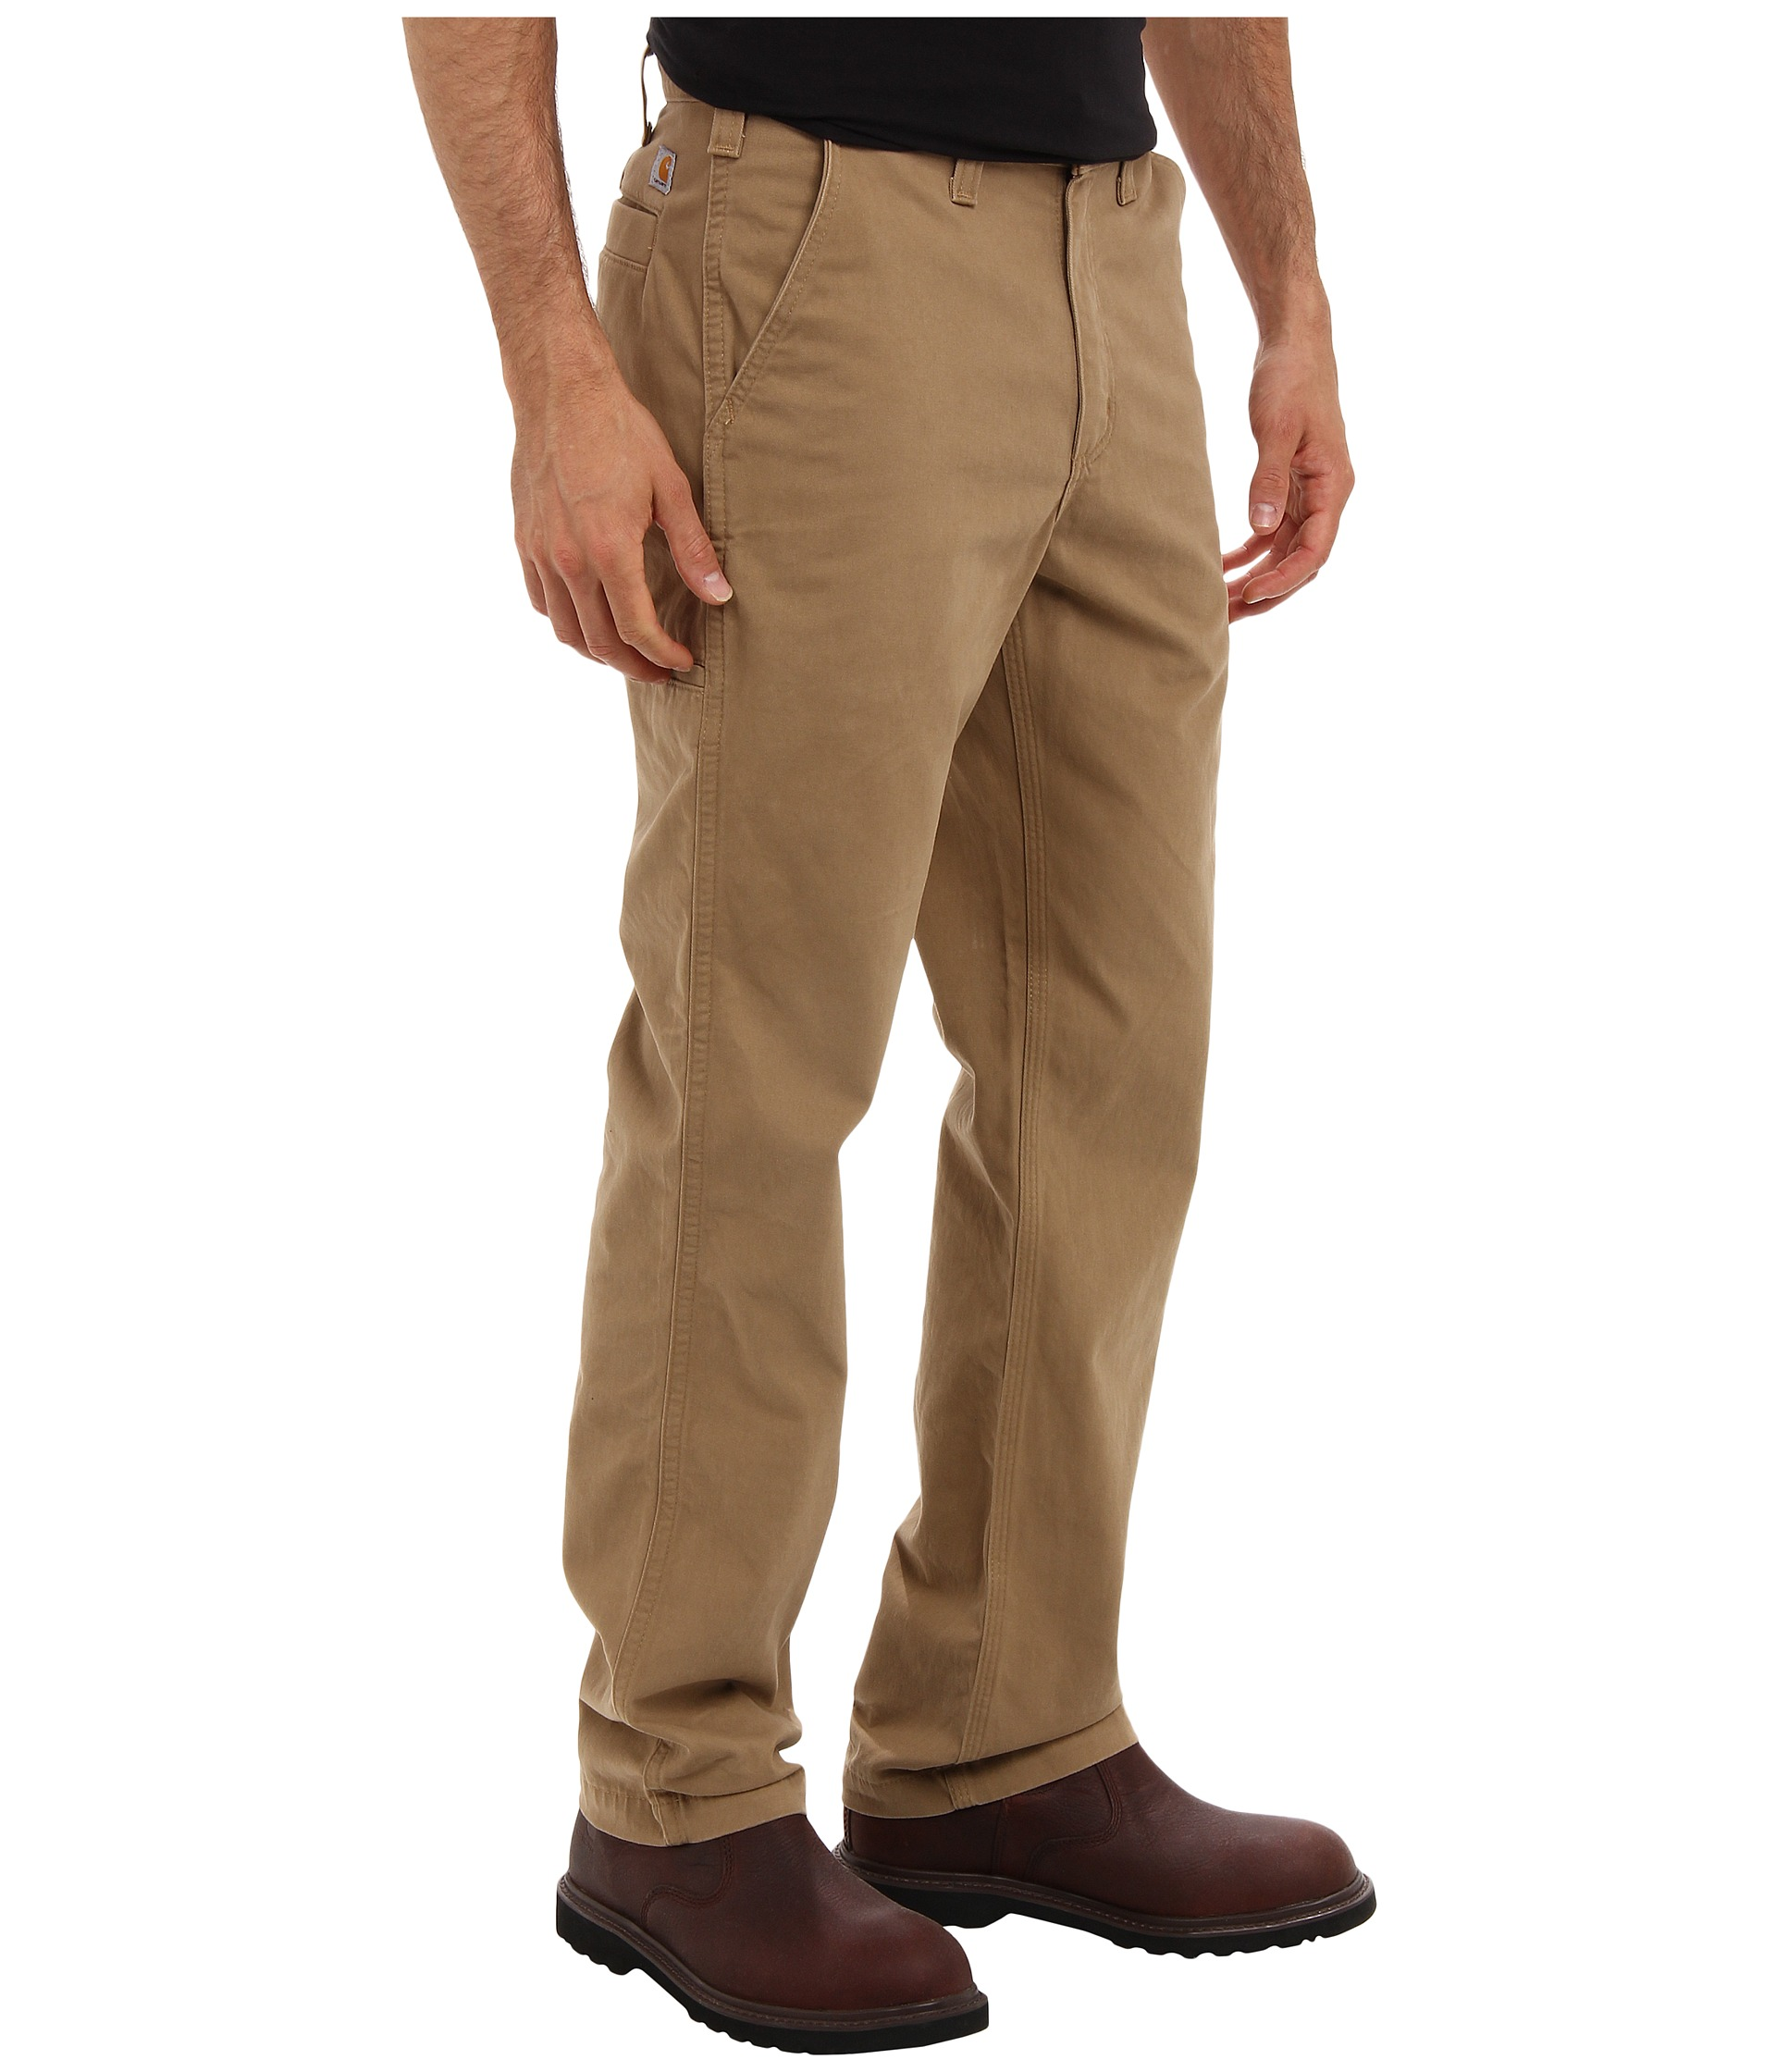 tubidyindir.ga: Khaki Work Pants. From The Community. Gift Certificates/Cards International Hot New Releases Best Sellers Today's Deals Sell Your Stuff Search results. of over 8, results for